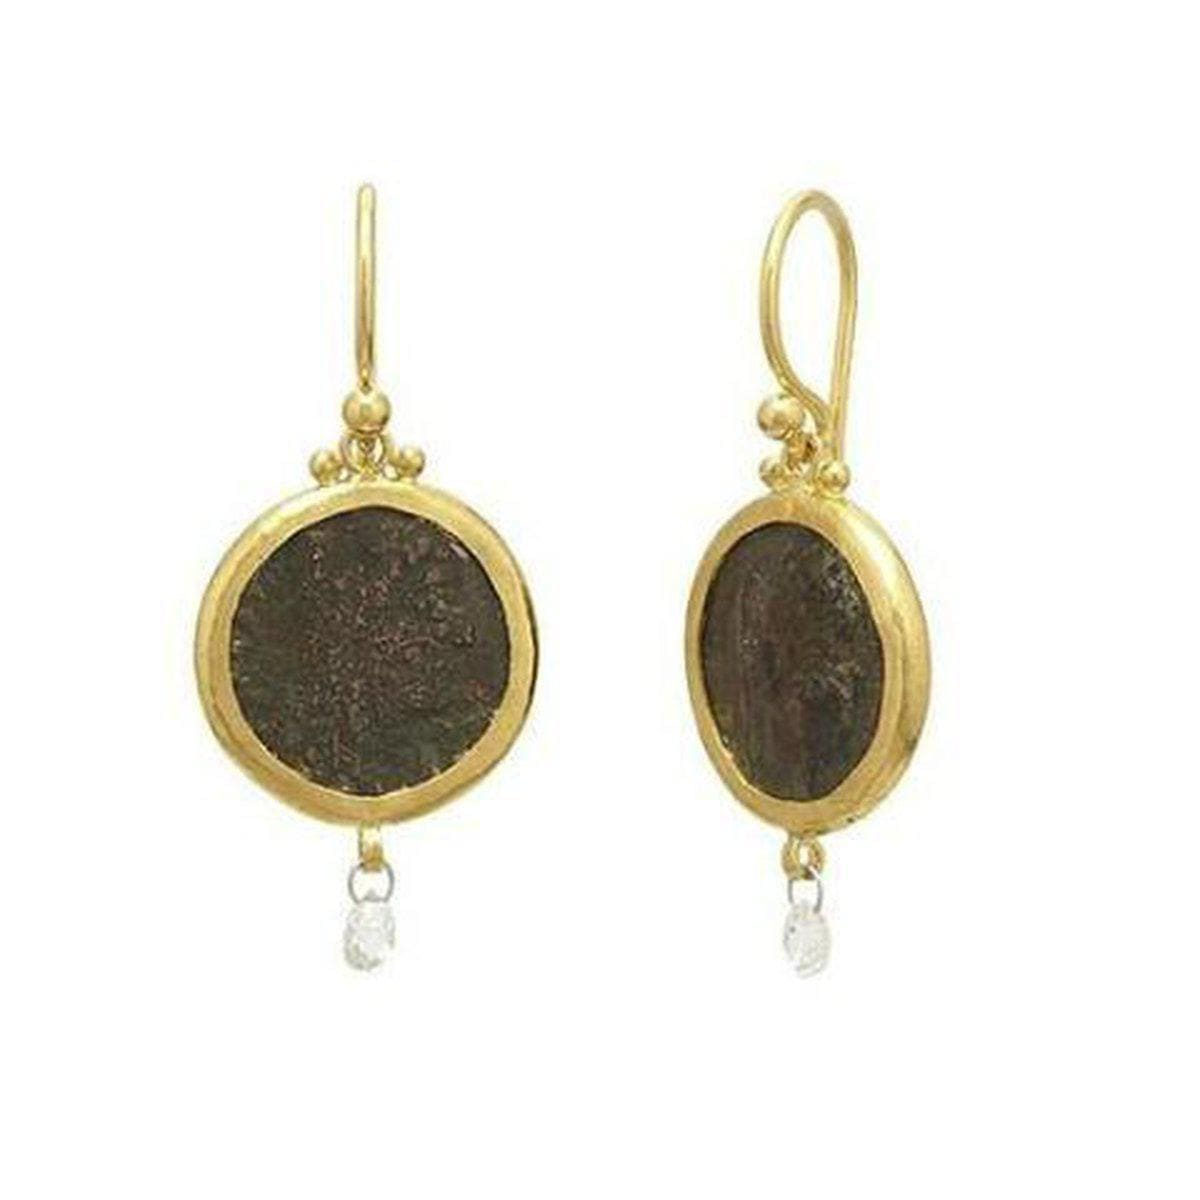 Antiquities 24K Gold Diamond Coin Earrings - E-U25443-CN-GURHAN-Renee Taylor Gallery